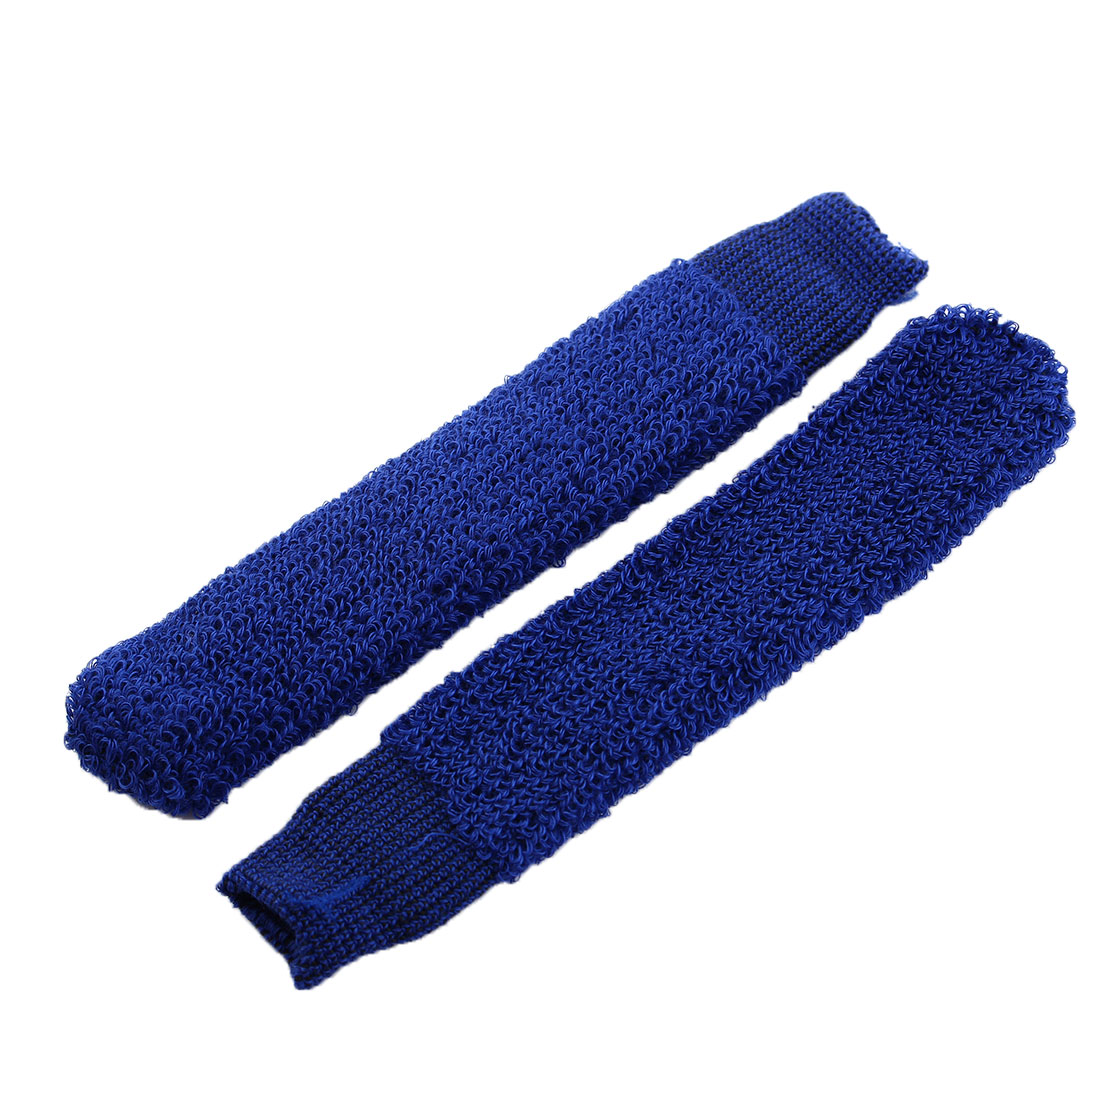 Badminton Cotton Blends Racket Handle Towel Wrap Over Grip Cover Blue 2pcs